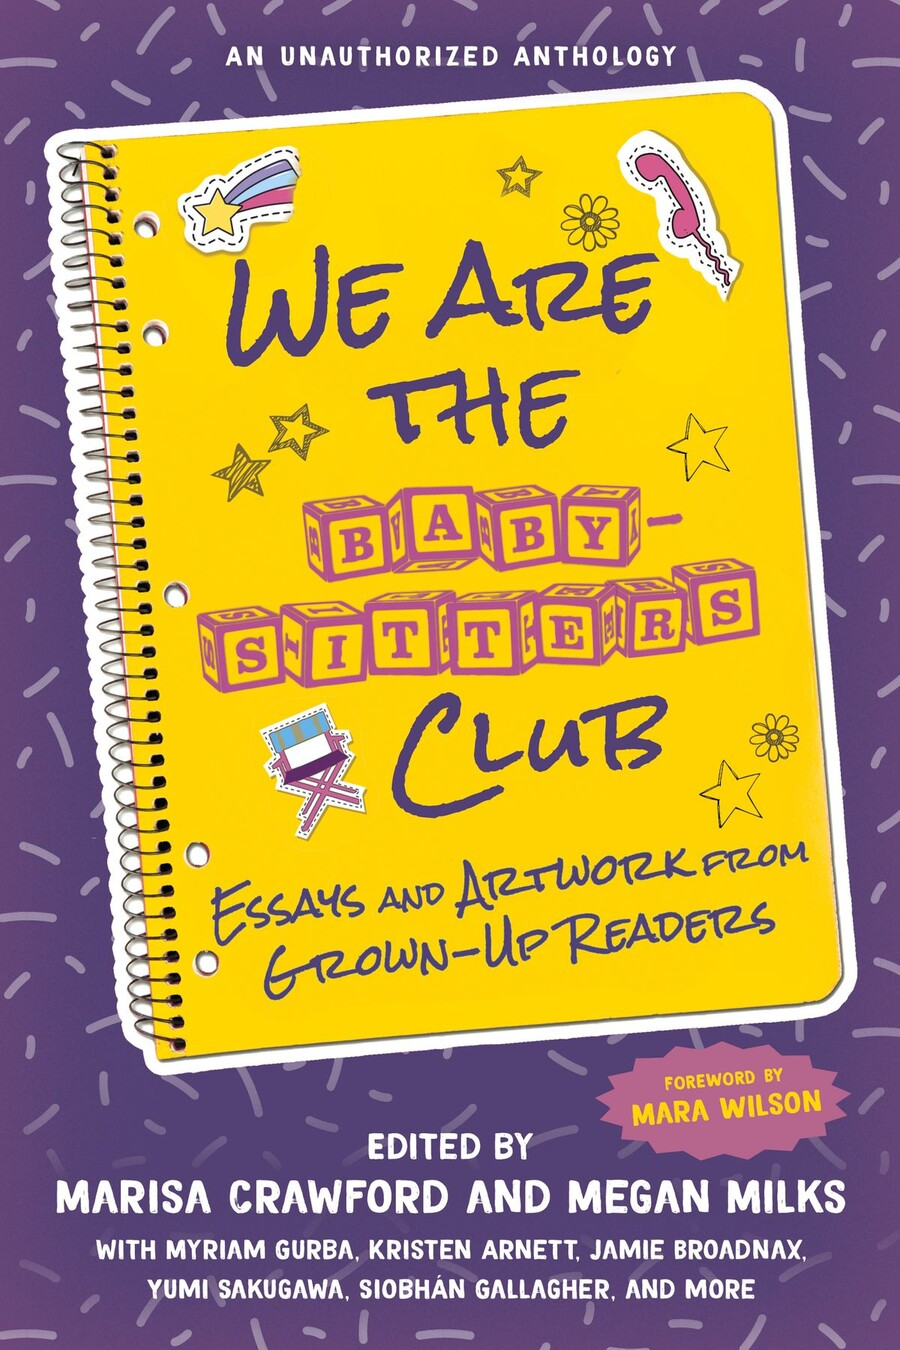 We Are the Baby-Sitters Club: Essays and Artwork from Grown-Up Readers is a purple book cover designed to resemble a notebook